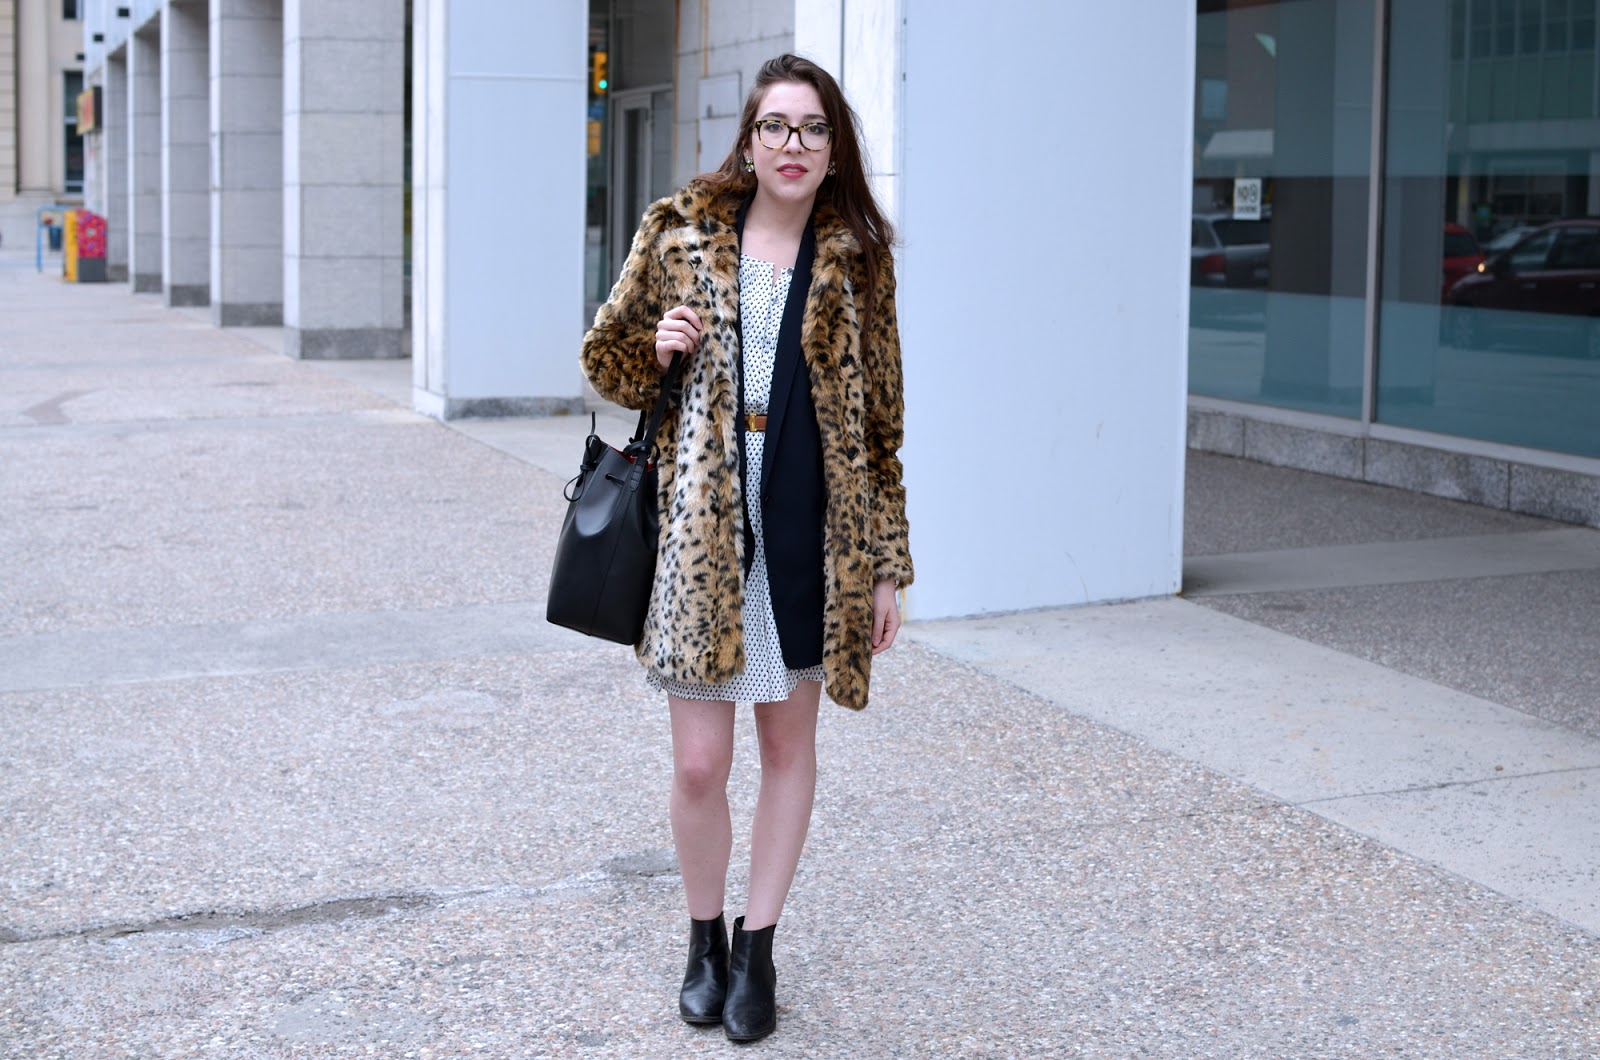 OOTD with a dress from Club Monaco, a Rag & Bone vest, Aritzia leopard coat, Mansur Gavriel bucket bag, and Zara Chelsea boots